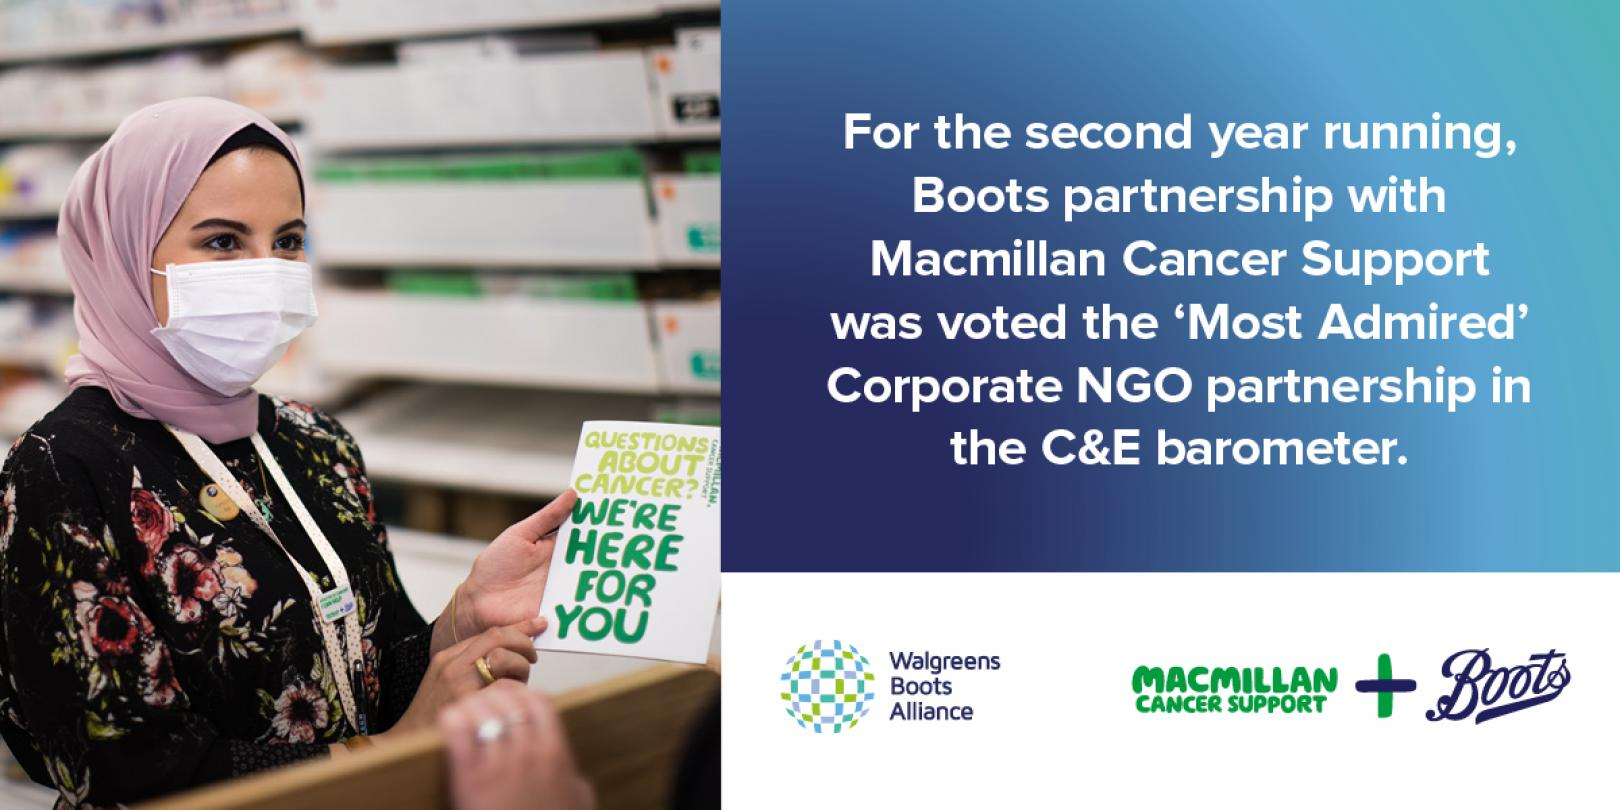 Boots UK & Macmillan Cancer Support voted Most Admired Corporate NGO Partnership Twitter LinkedIn